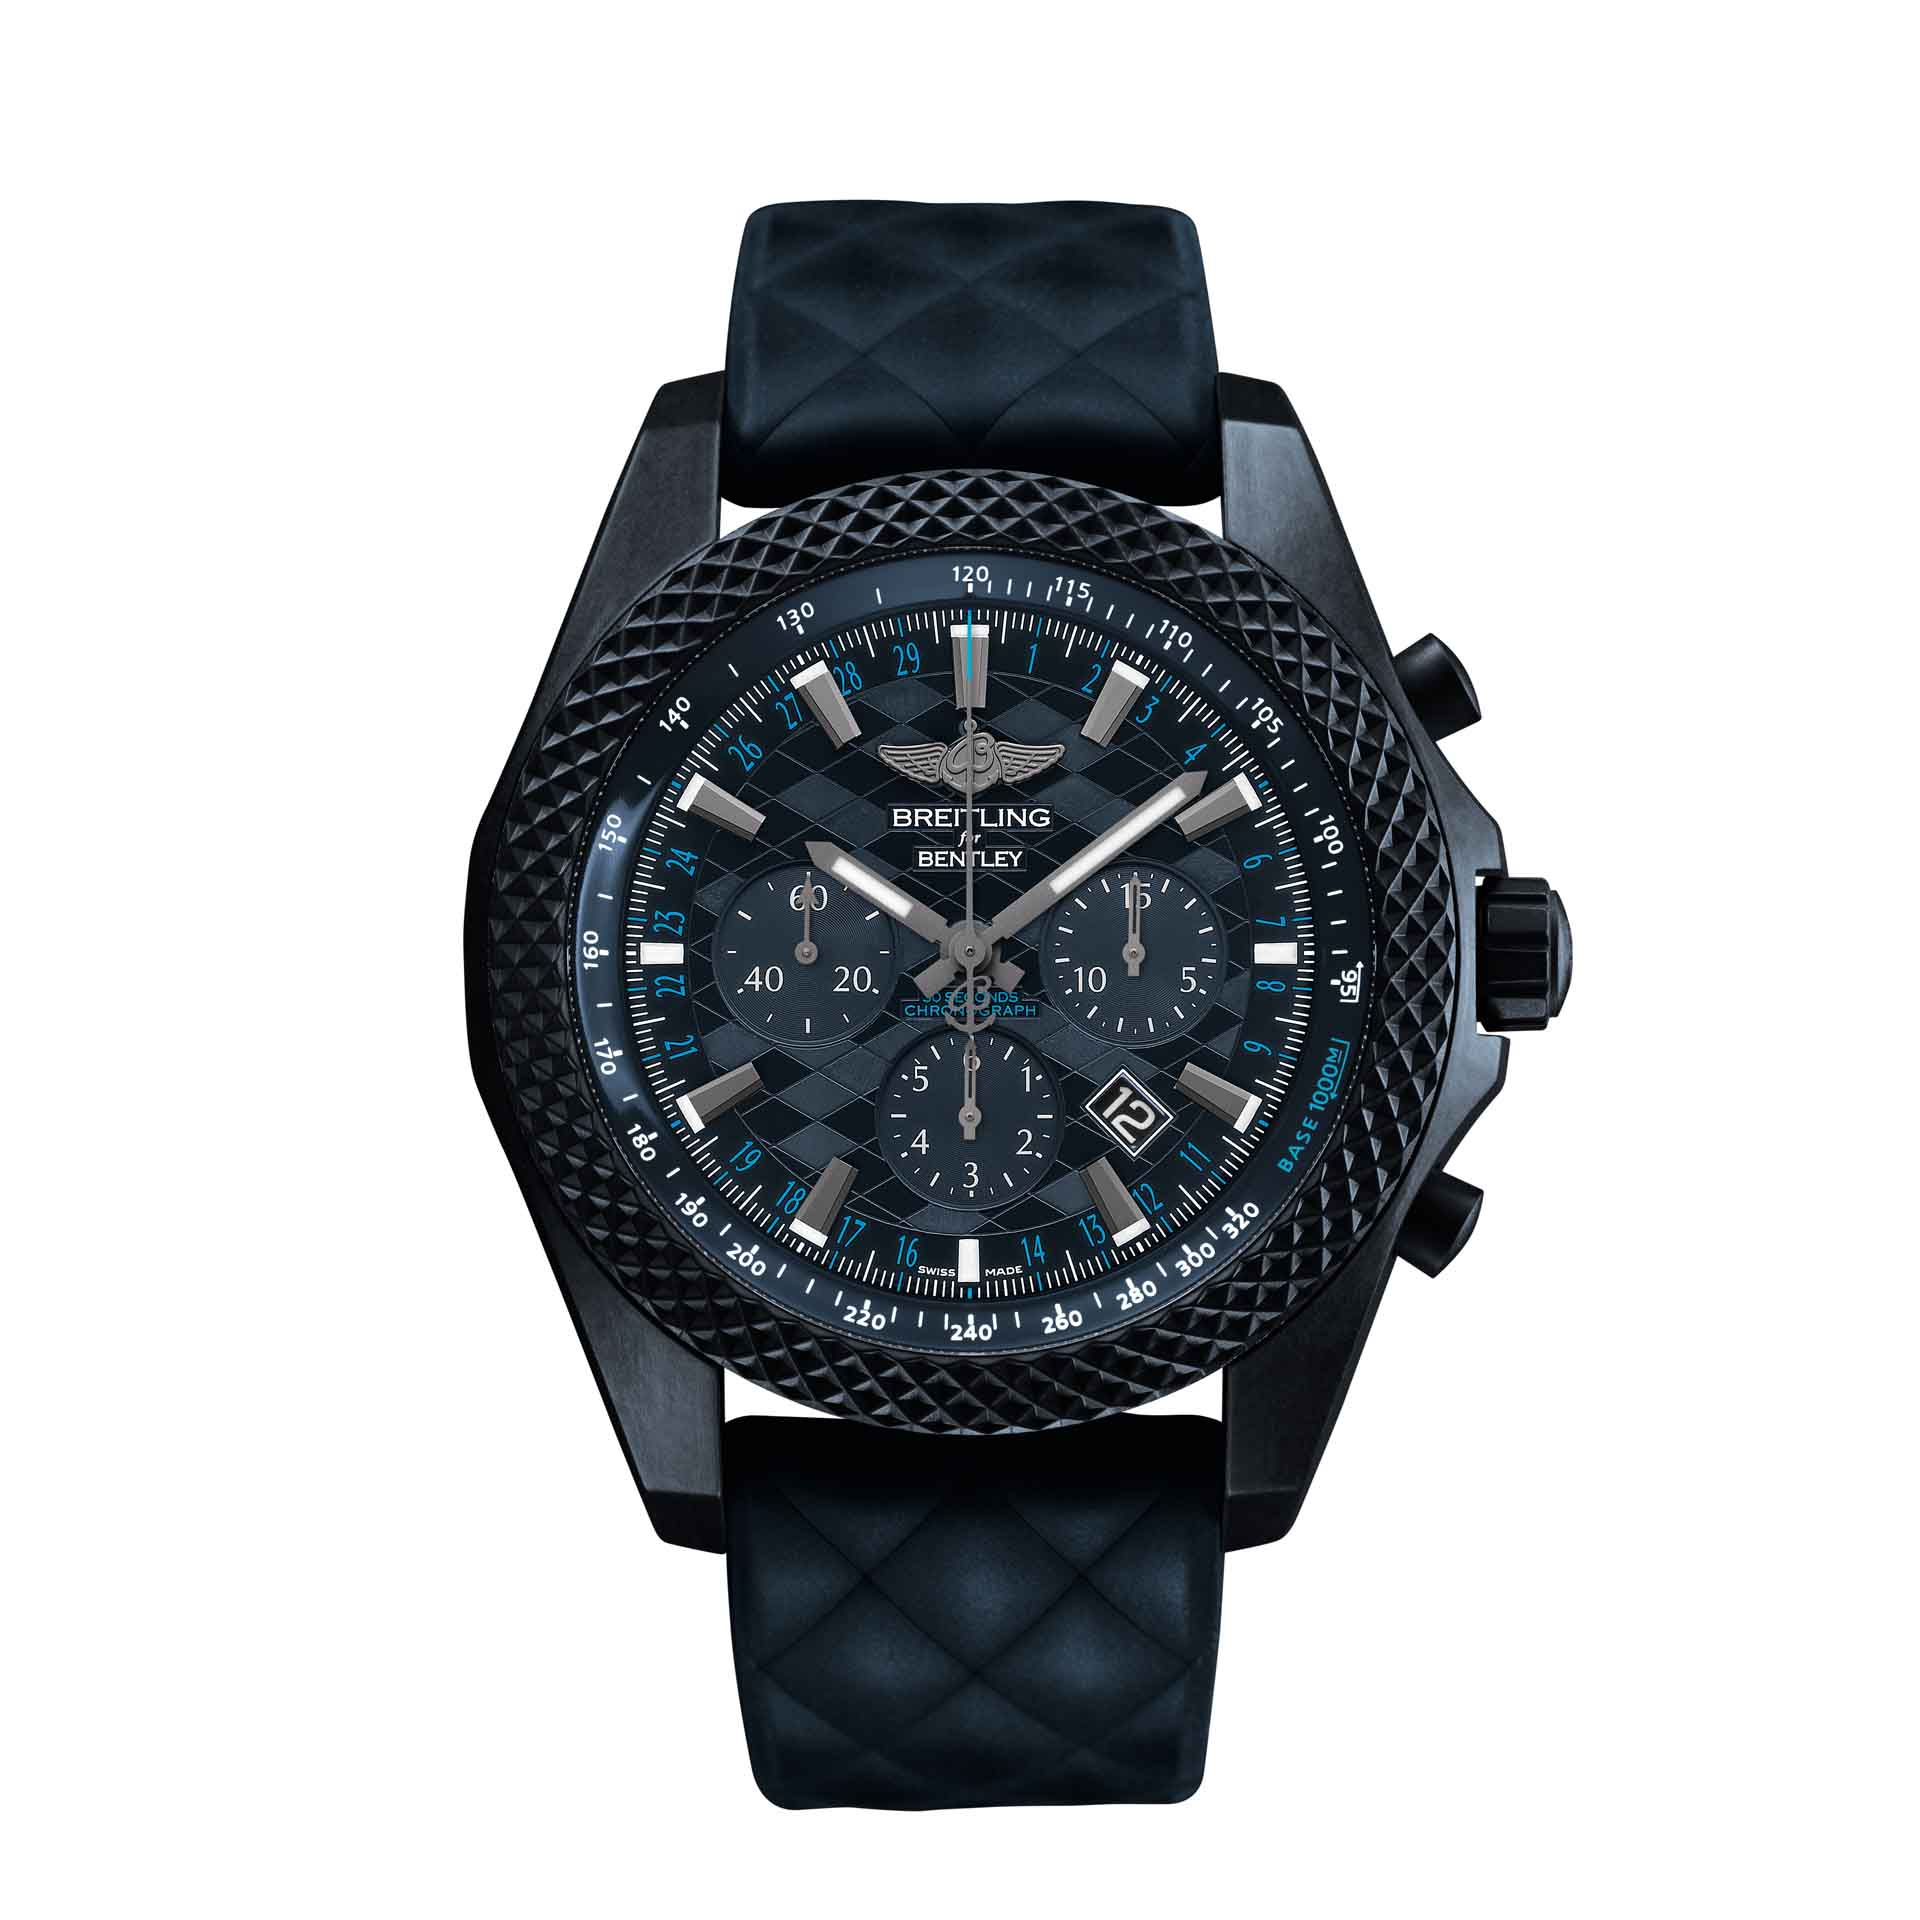 Breitling Bentley Gt Wristwatches: Breitling For Bentley GT Dark Sapphire Edition